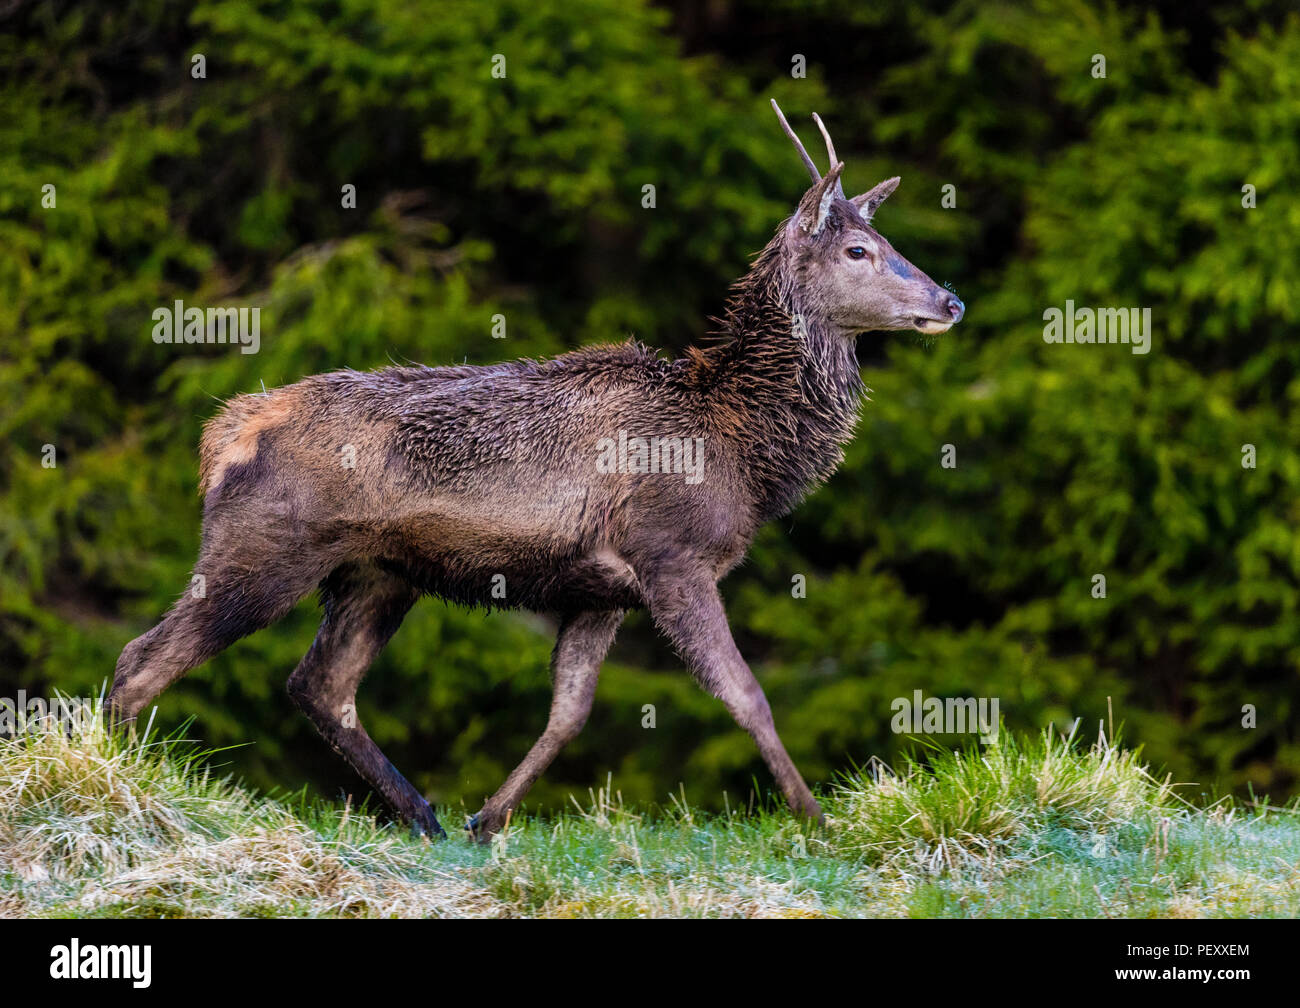 A young deer stag - Stock Image